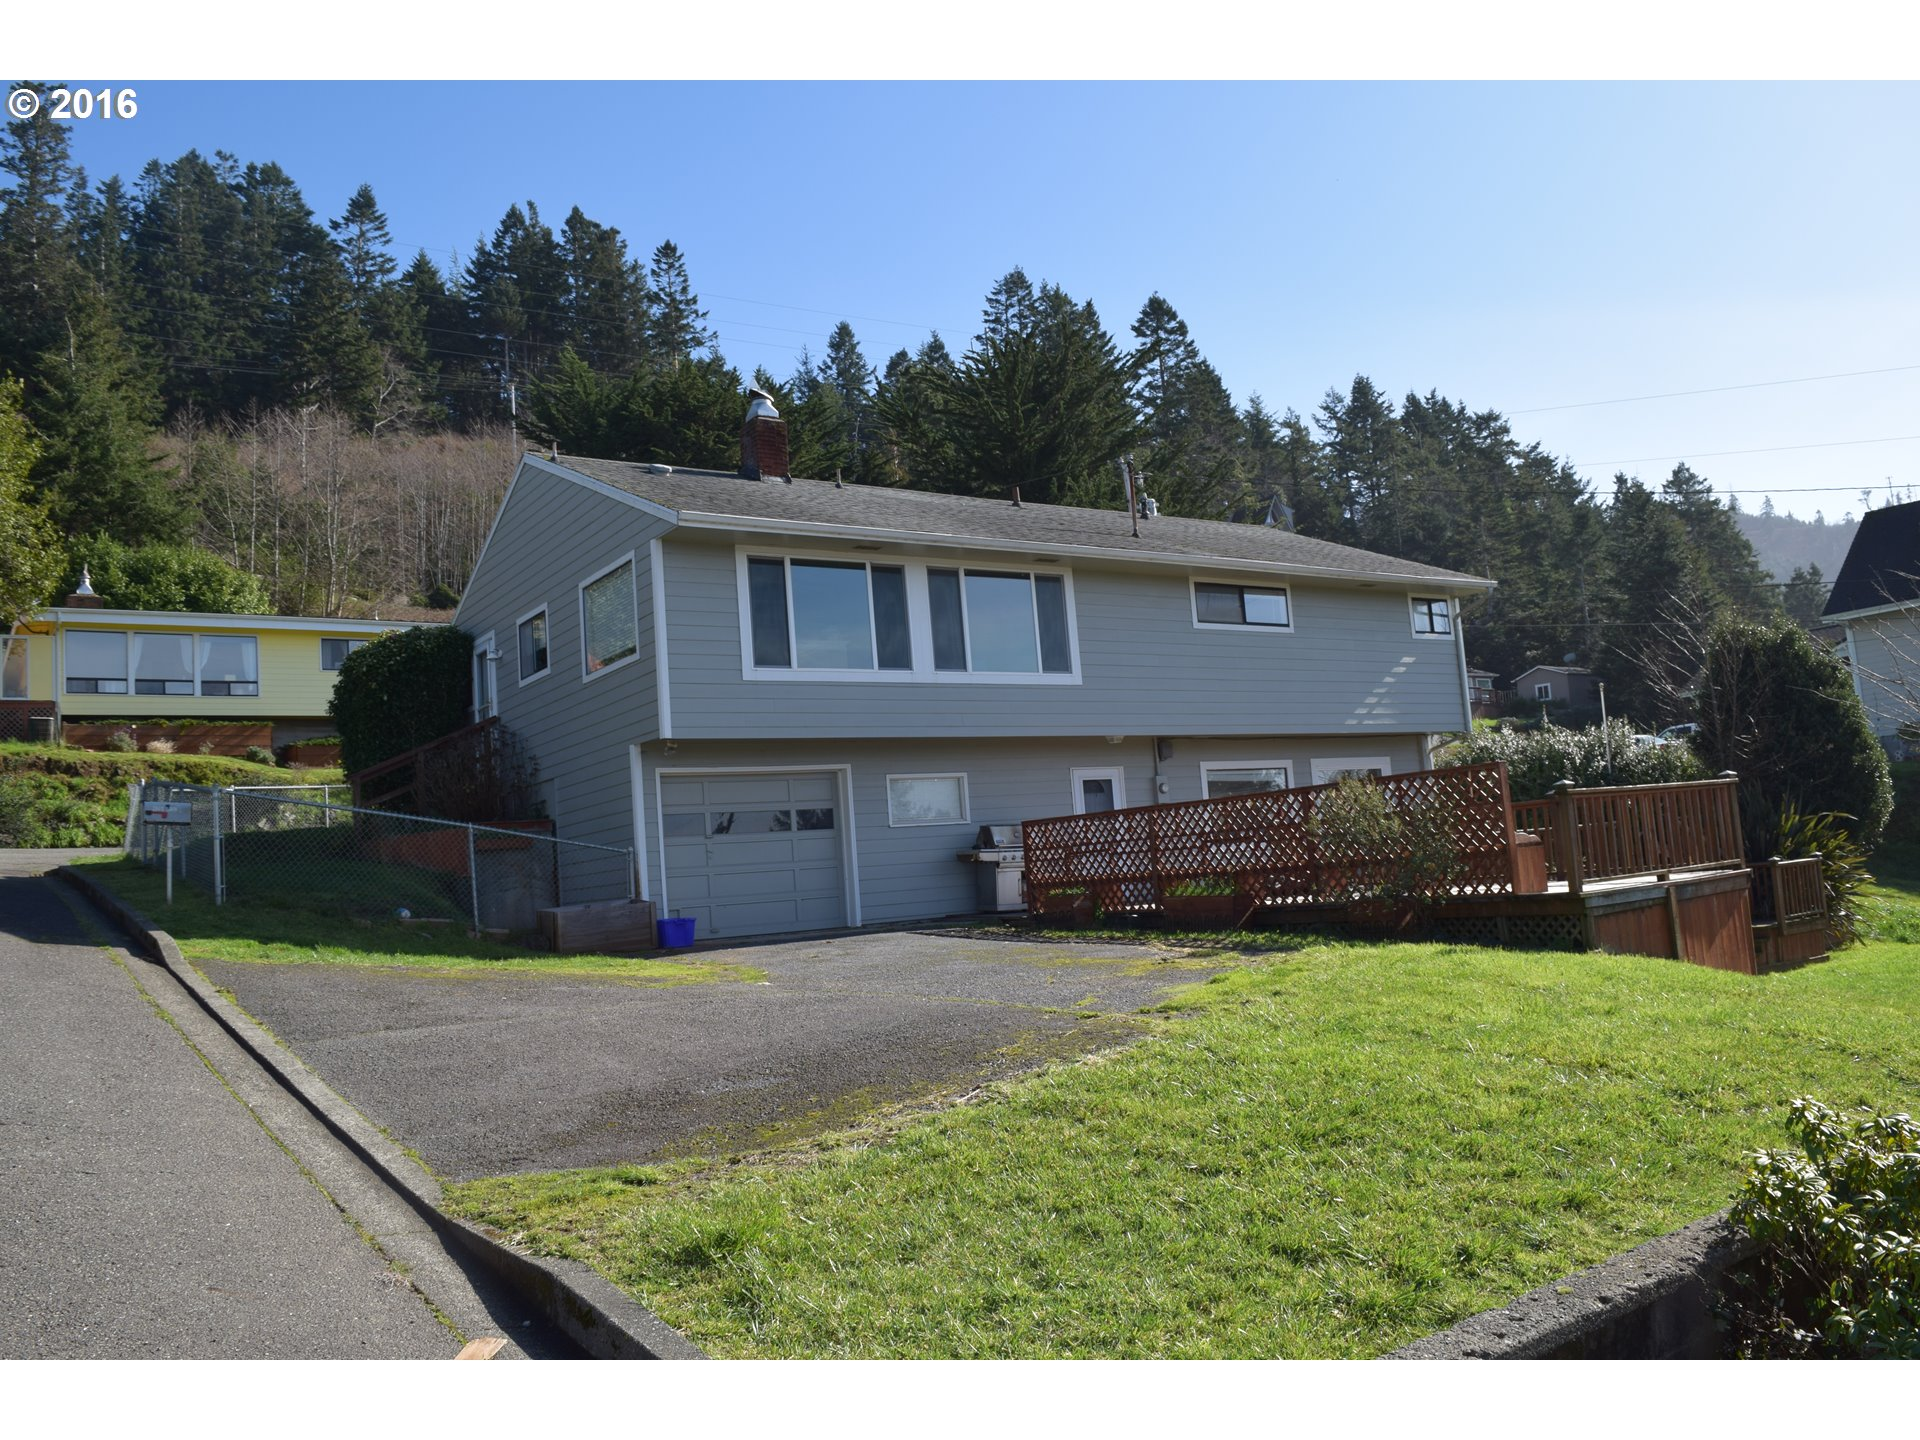 29410 LAVIN ST Gold Beach, Brookings Home Listings - Pacific Coastal Real Estate